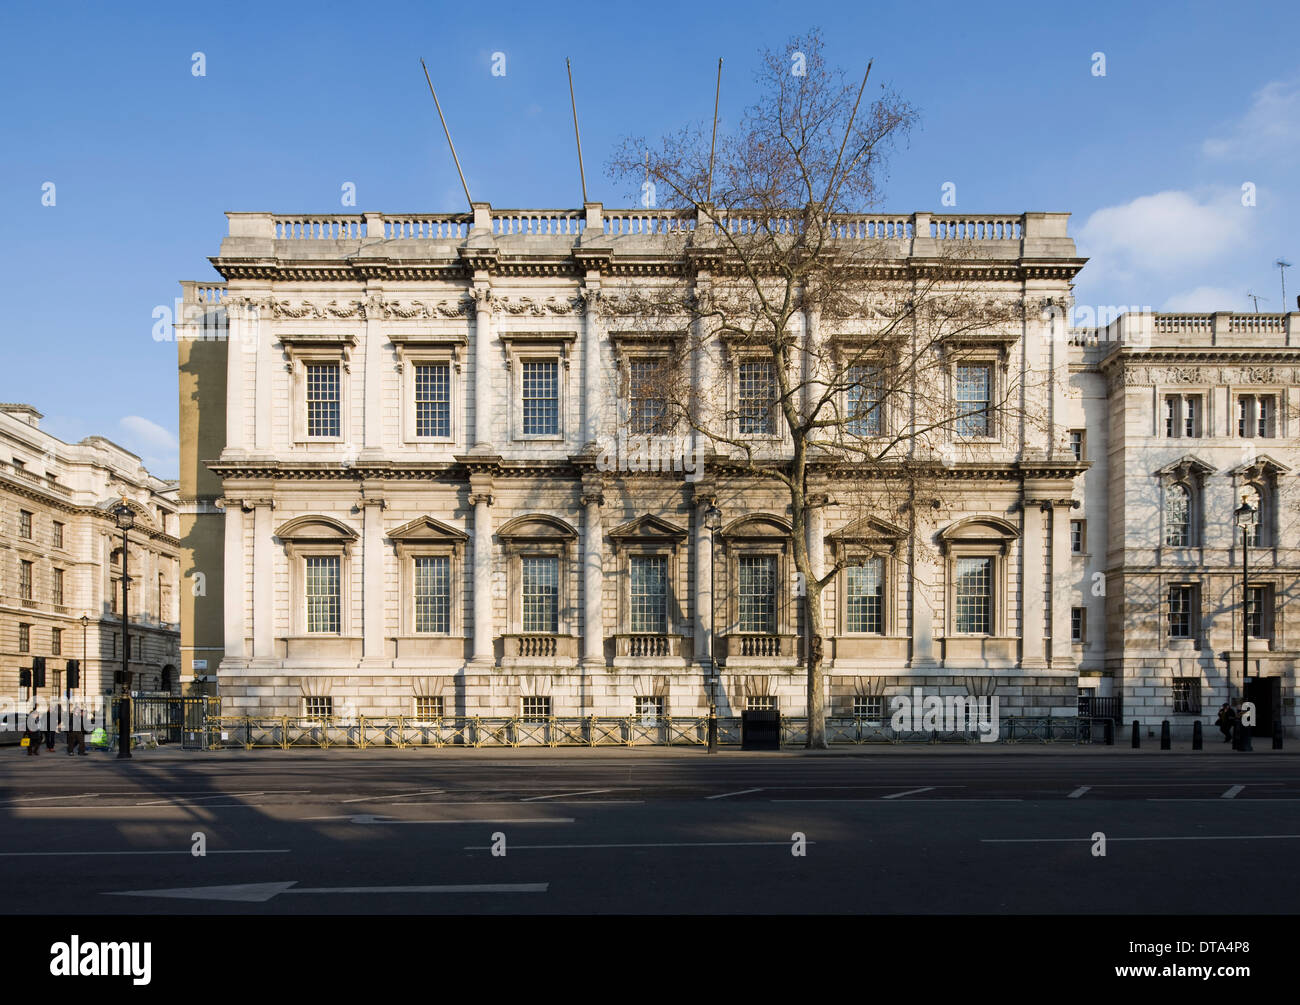 Banqueting Hall Whitehall Stock Photos Banqueting Hall Whitehall